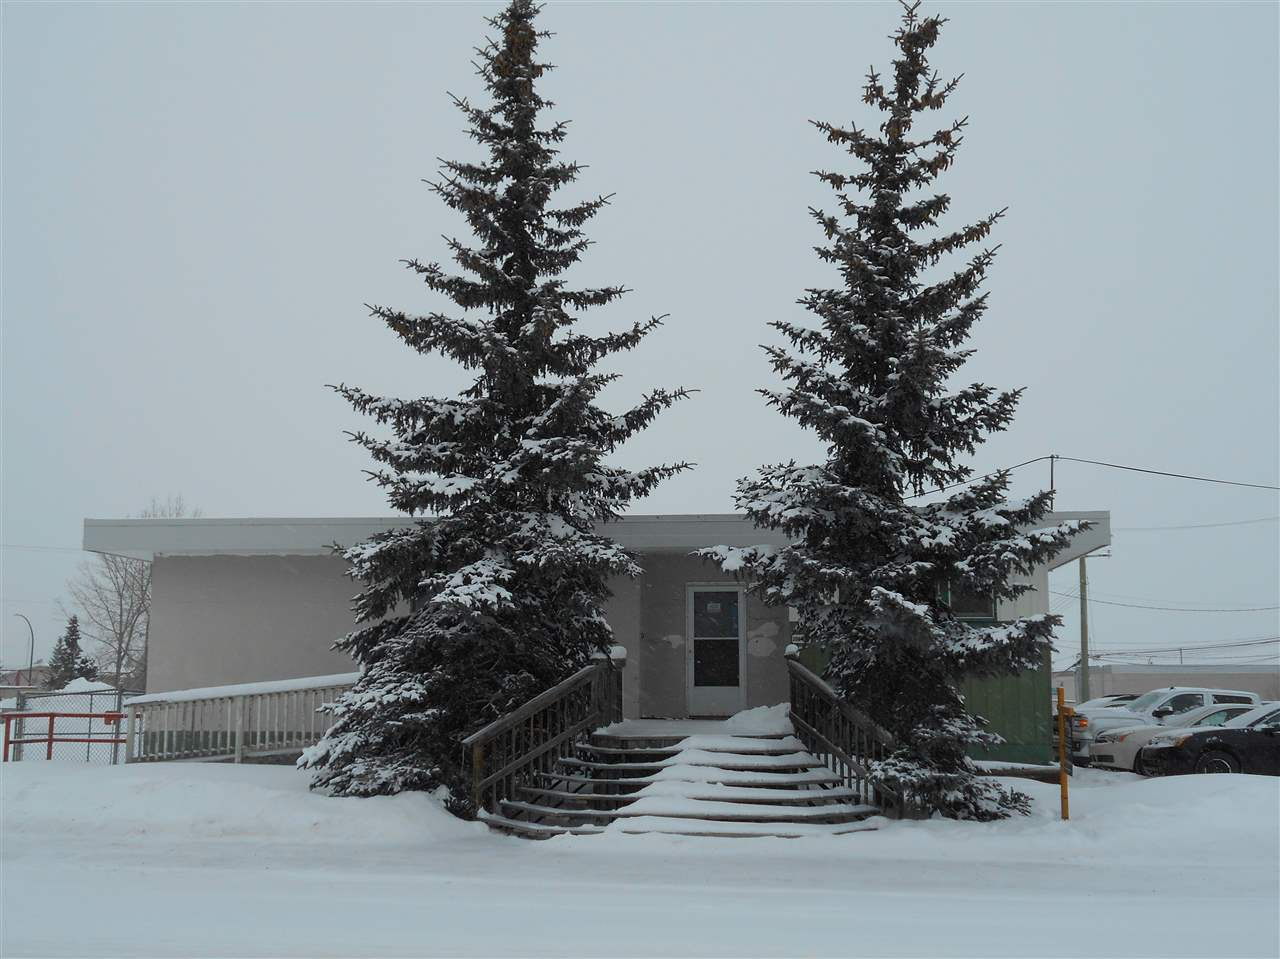 Main Photo: 5116 51 Avenue: Drayton Valley Office for sale : MLS®# E4173575